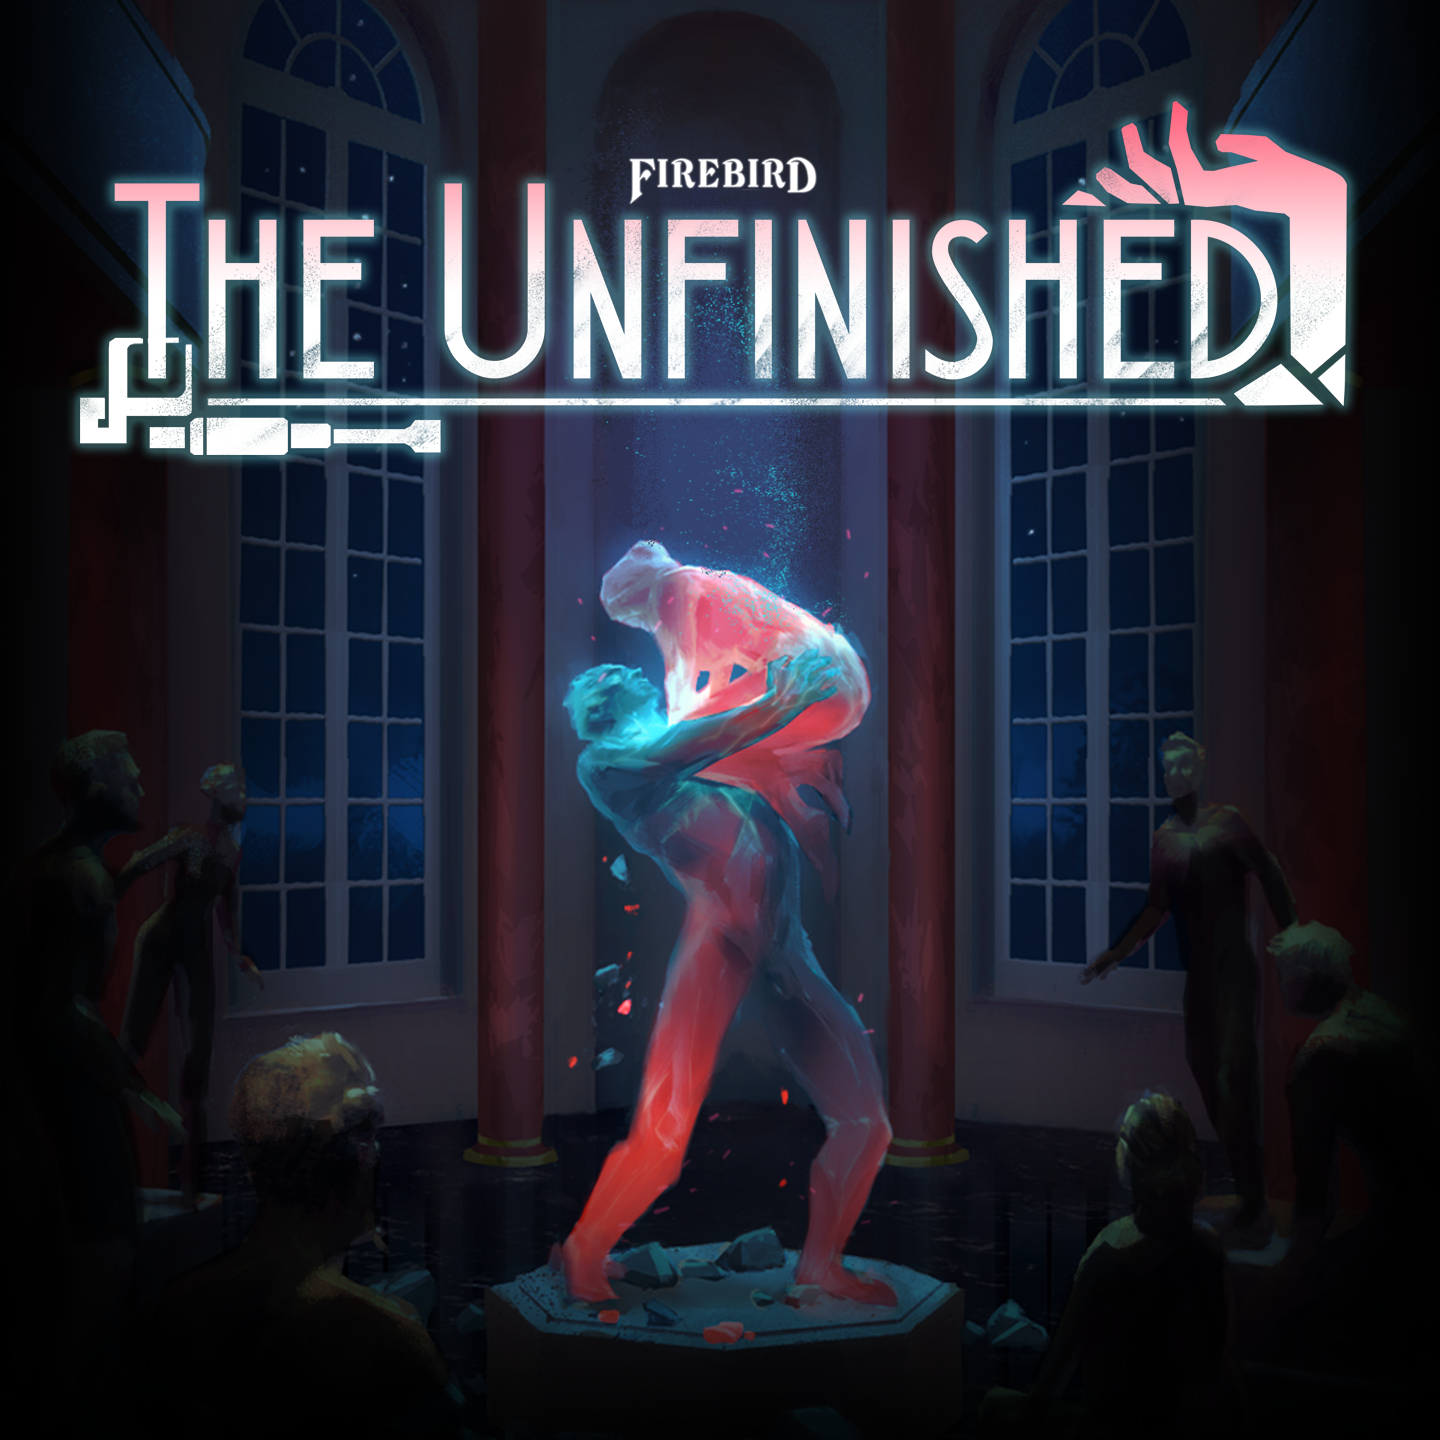 EP.2 - THE UNFINISHED